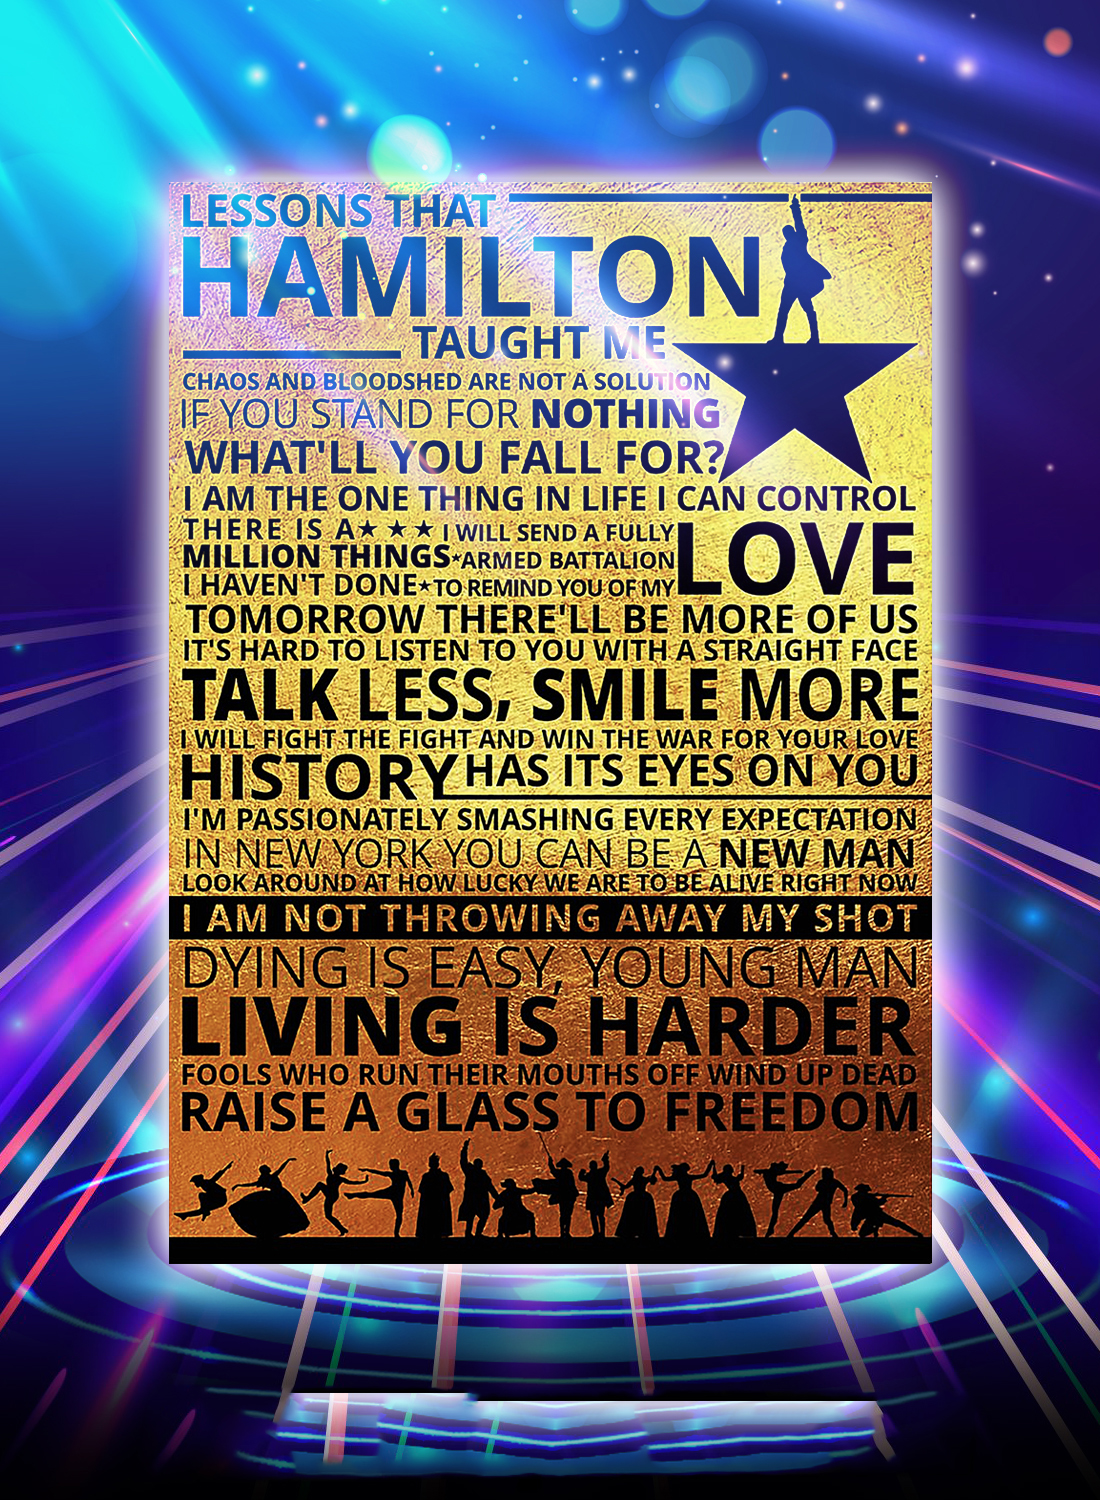 Lessons hamilton taught me poster - A4